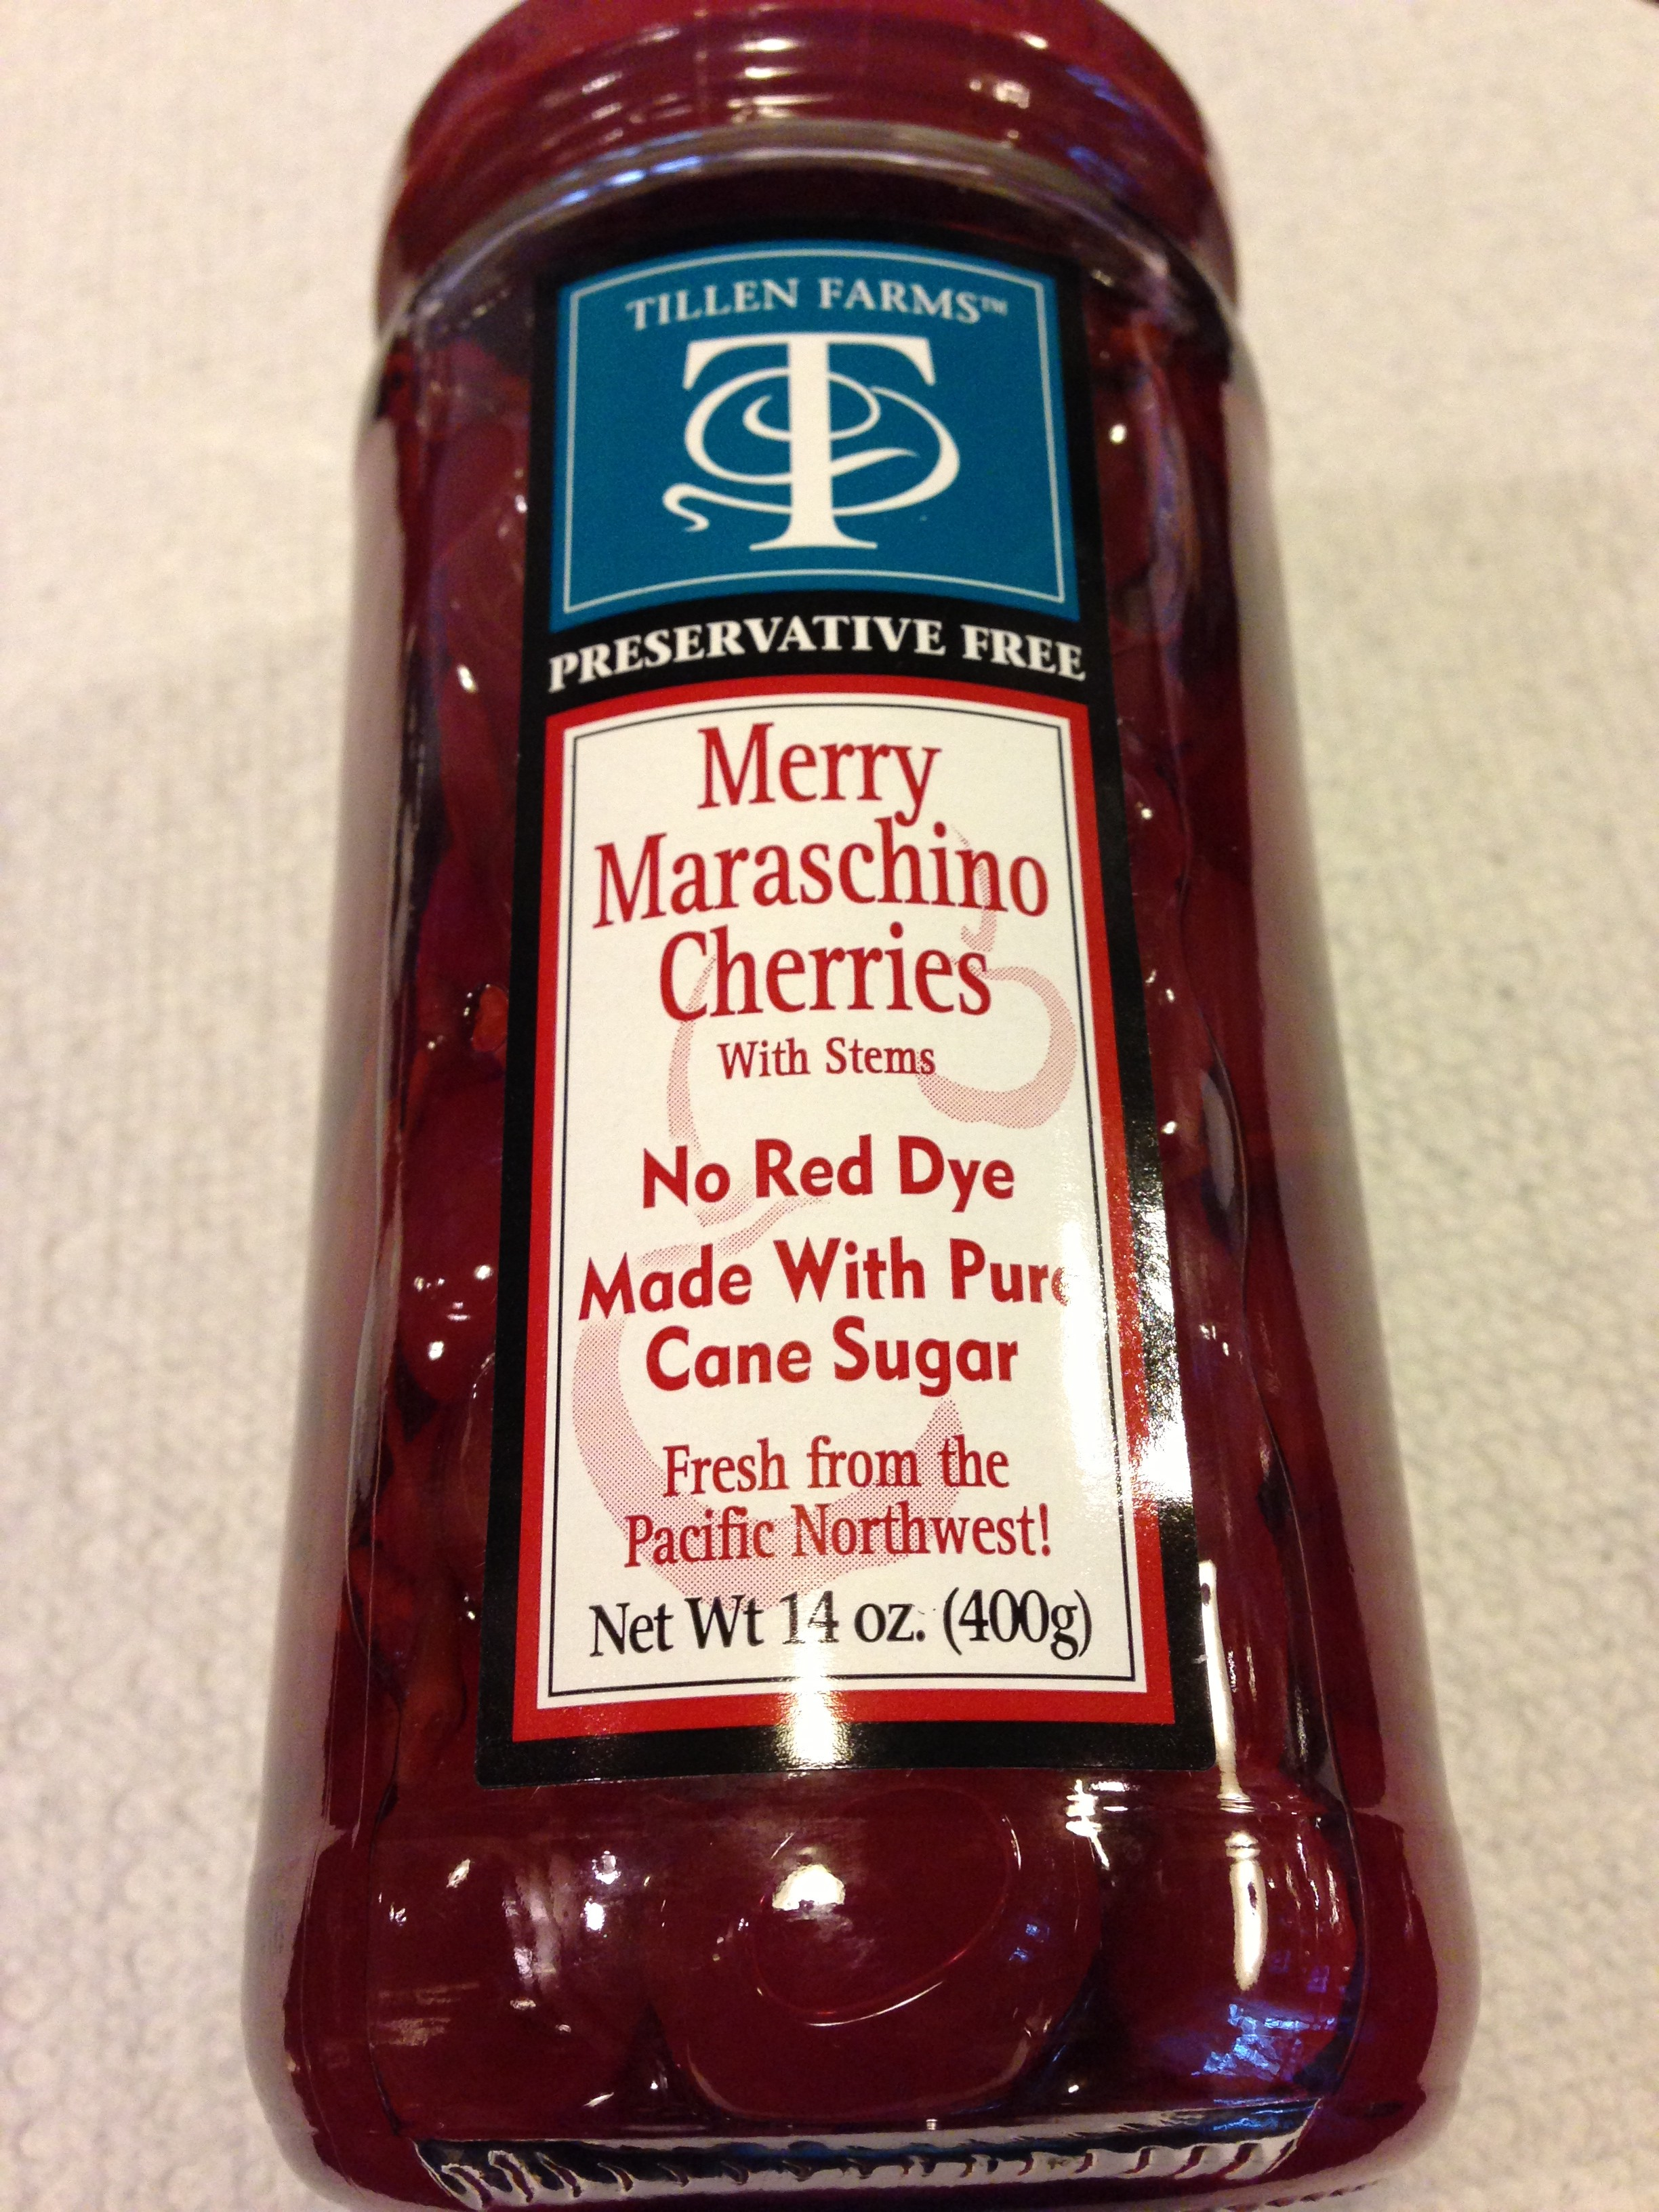 Tillen Farms Maraschino Cherries (Photo Credit: Adroit Ideals)